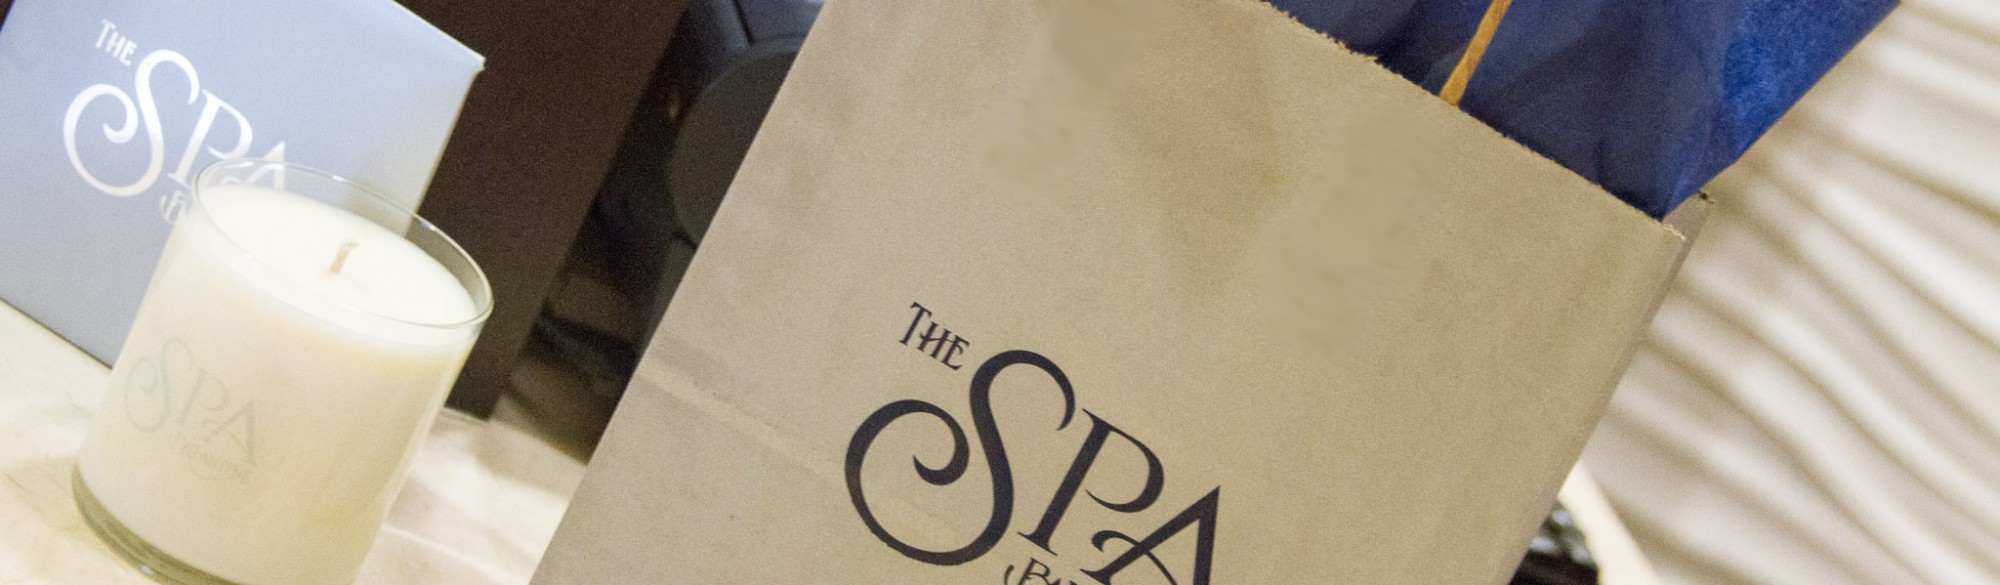 The Spa Offers Header